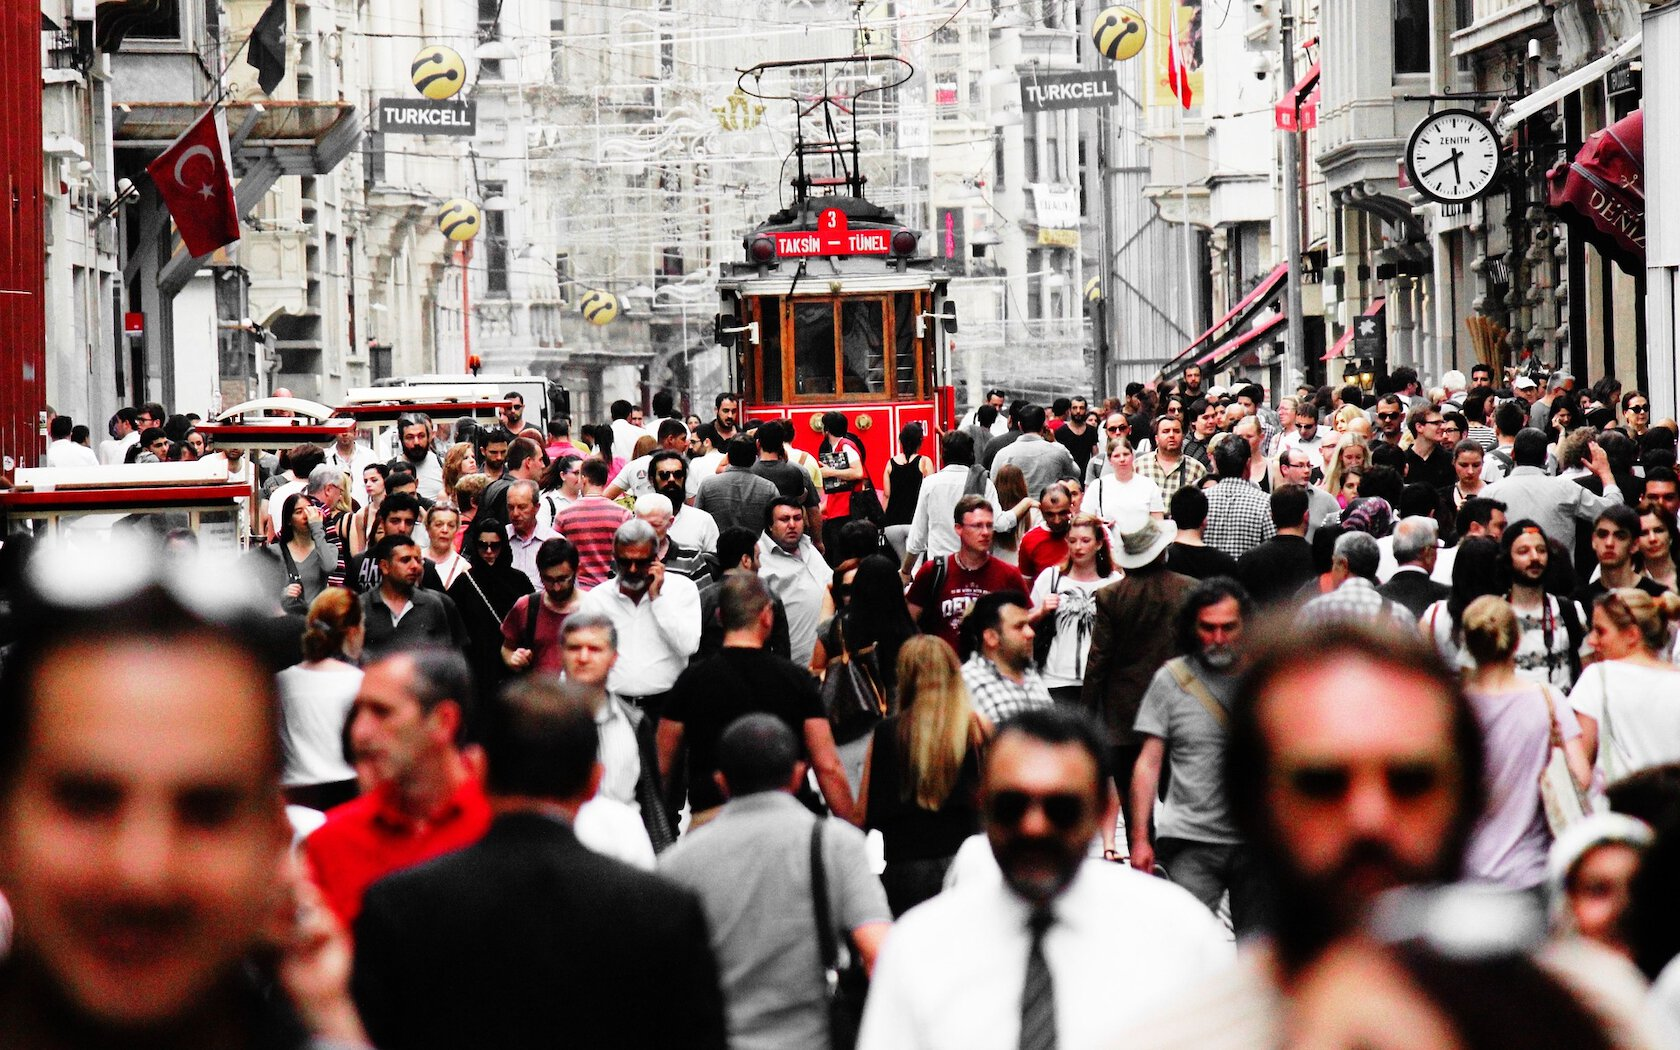 People in Istiklal Street, Istanbul